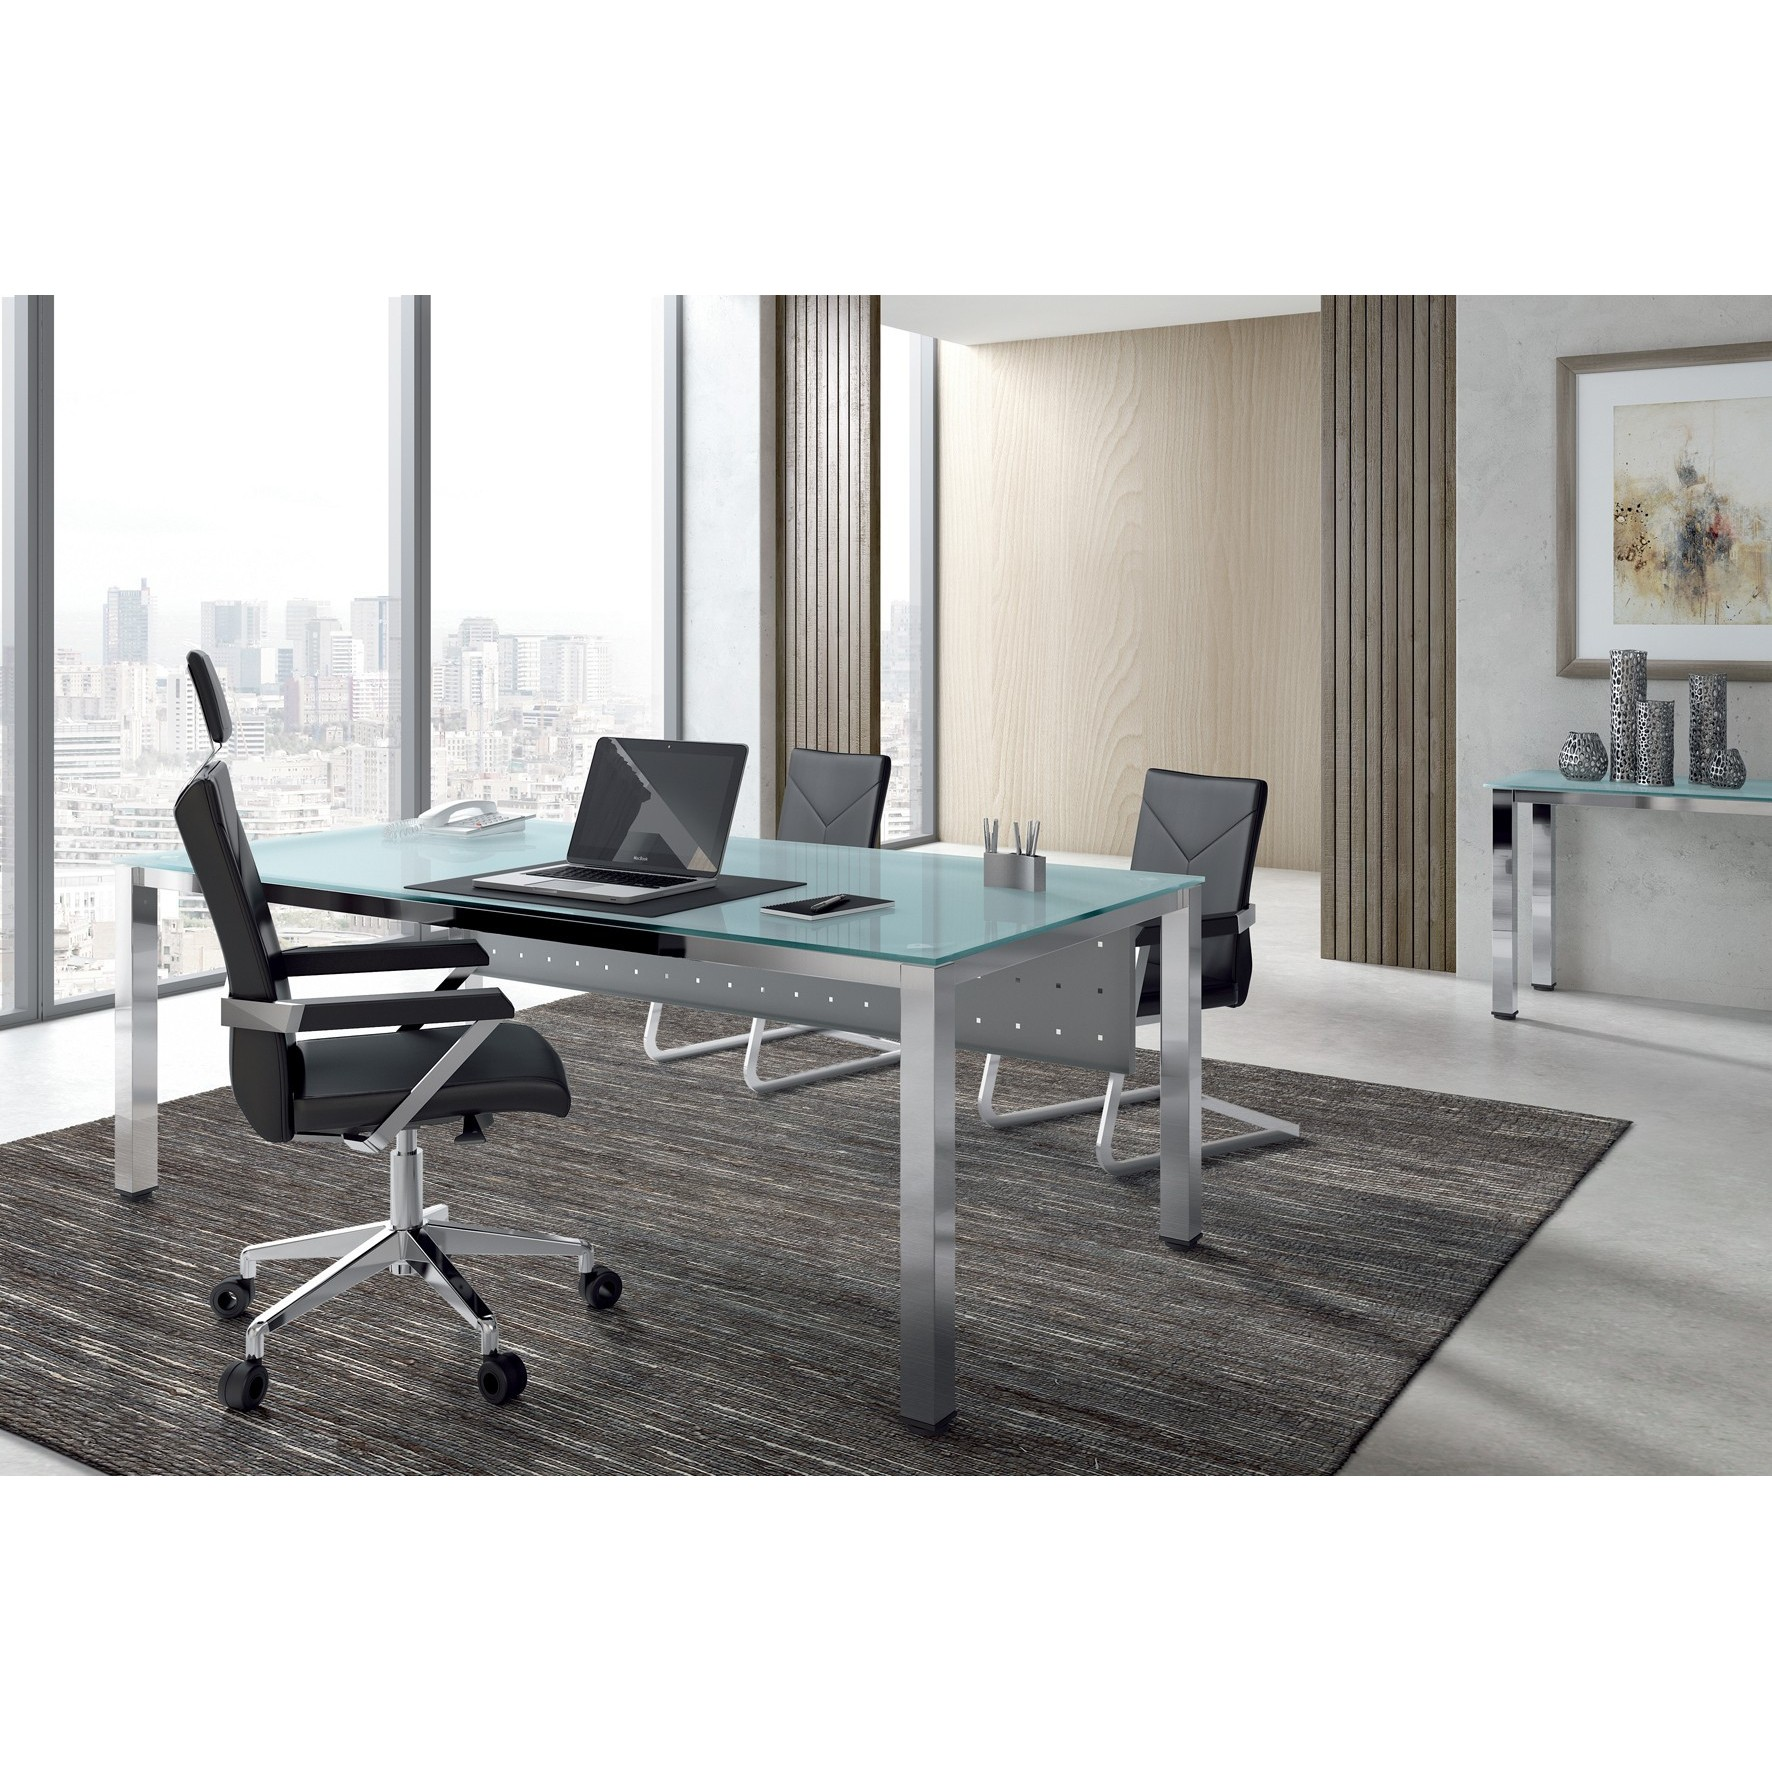 TABLE OFFICE 'S EXECUTIVE SERIES 160X80 WHITE/CRYSTAL